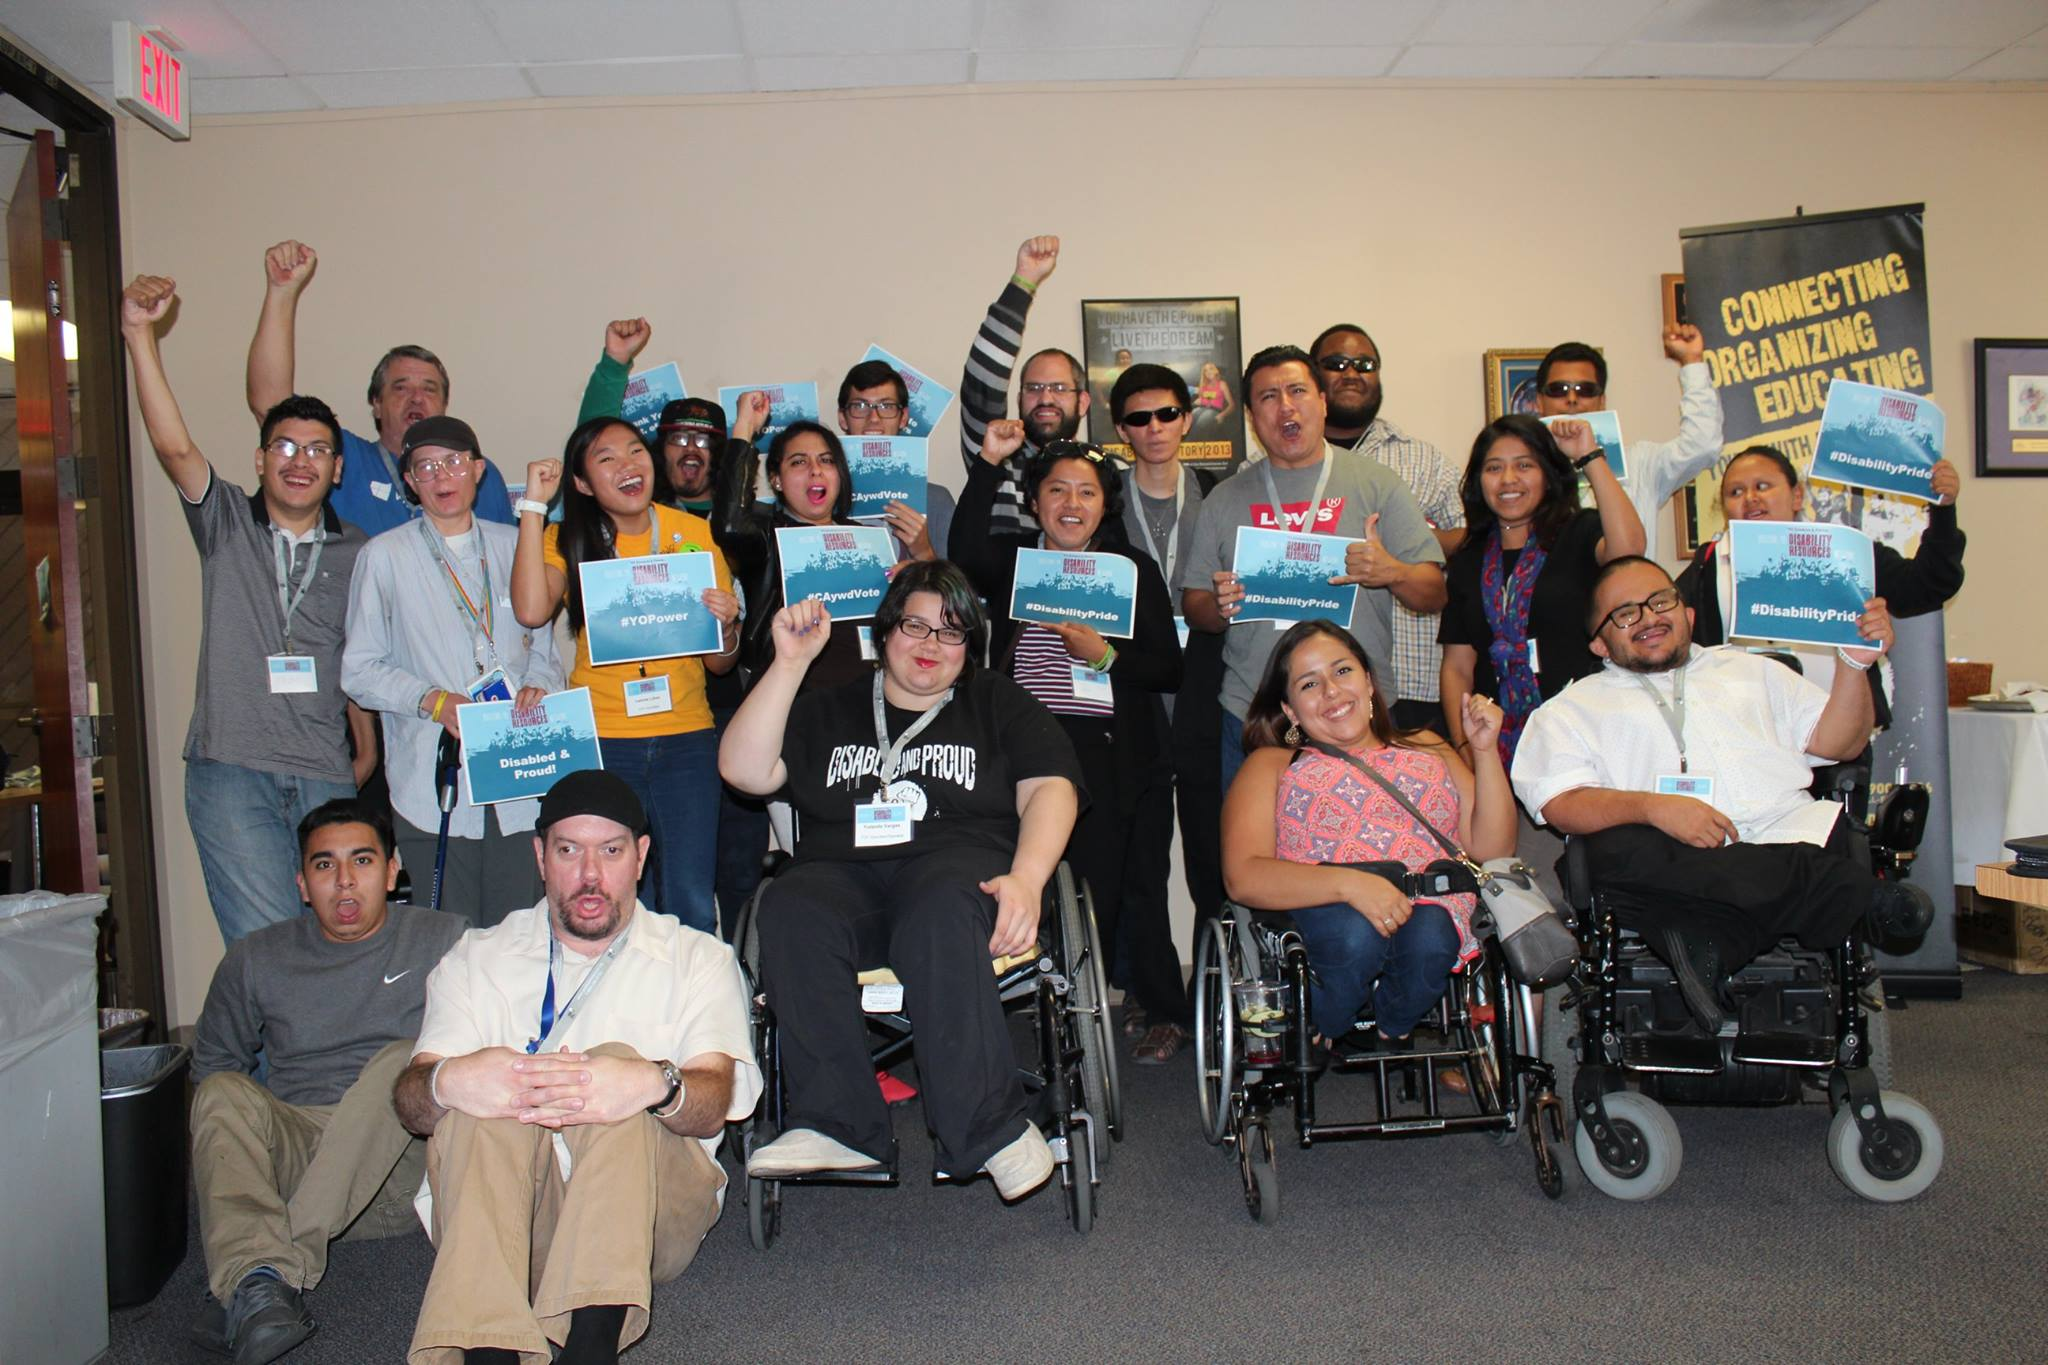 A group of people with disabilities are together with their hands up in a fist.